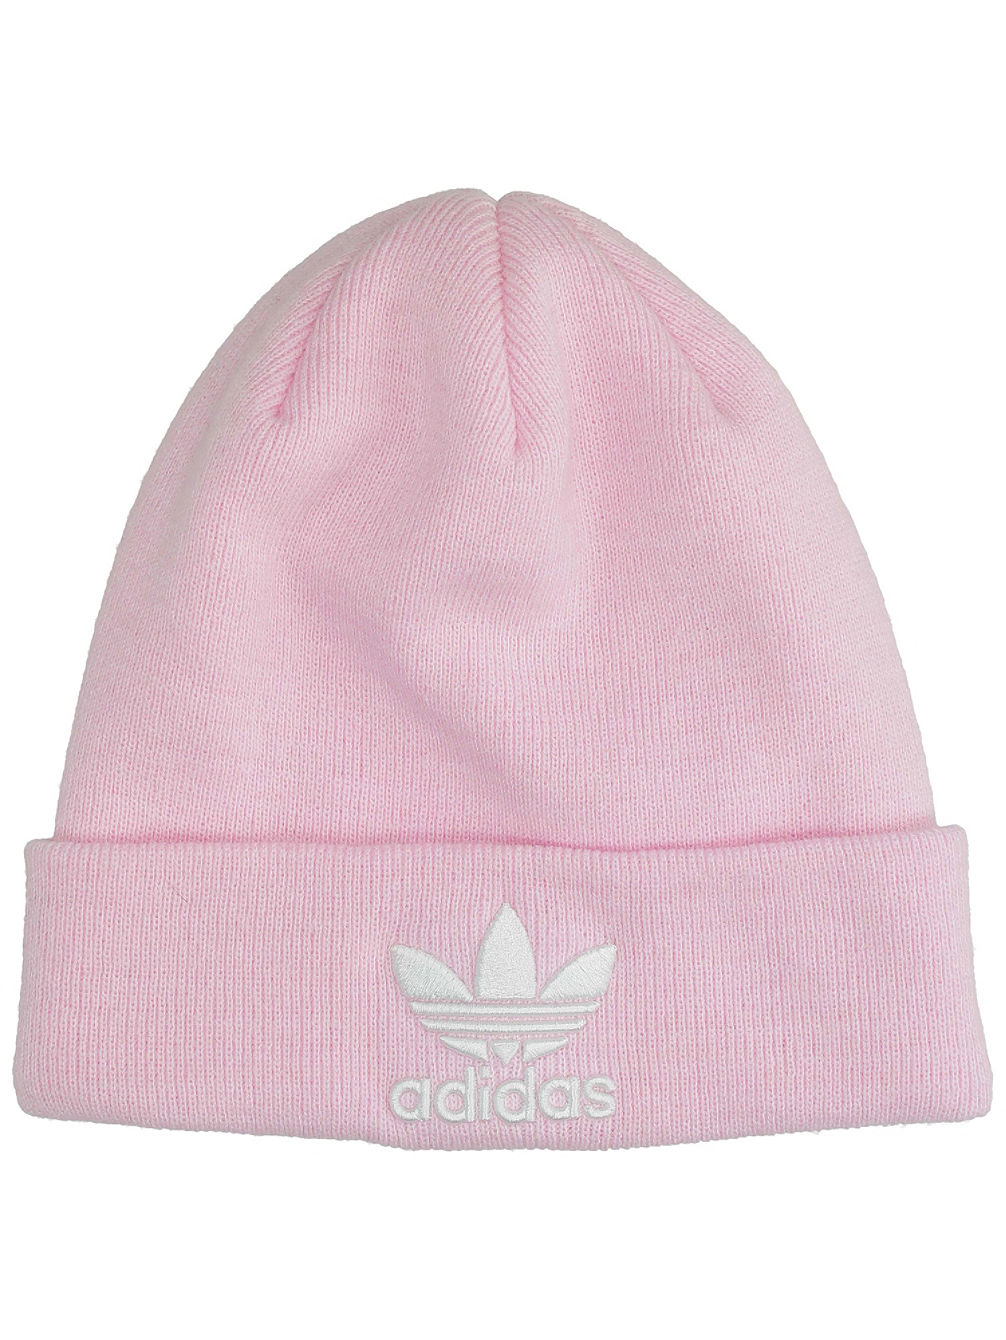 Buy adidas Originals Trefoil Beanie online at blue-tomato.com 114c95caf6d